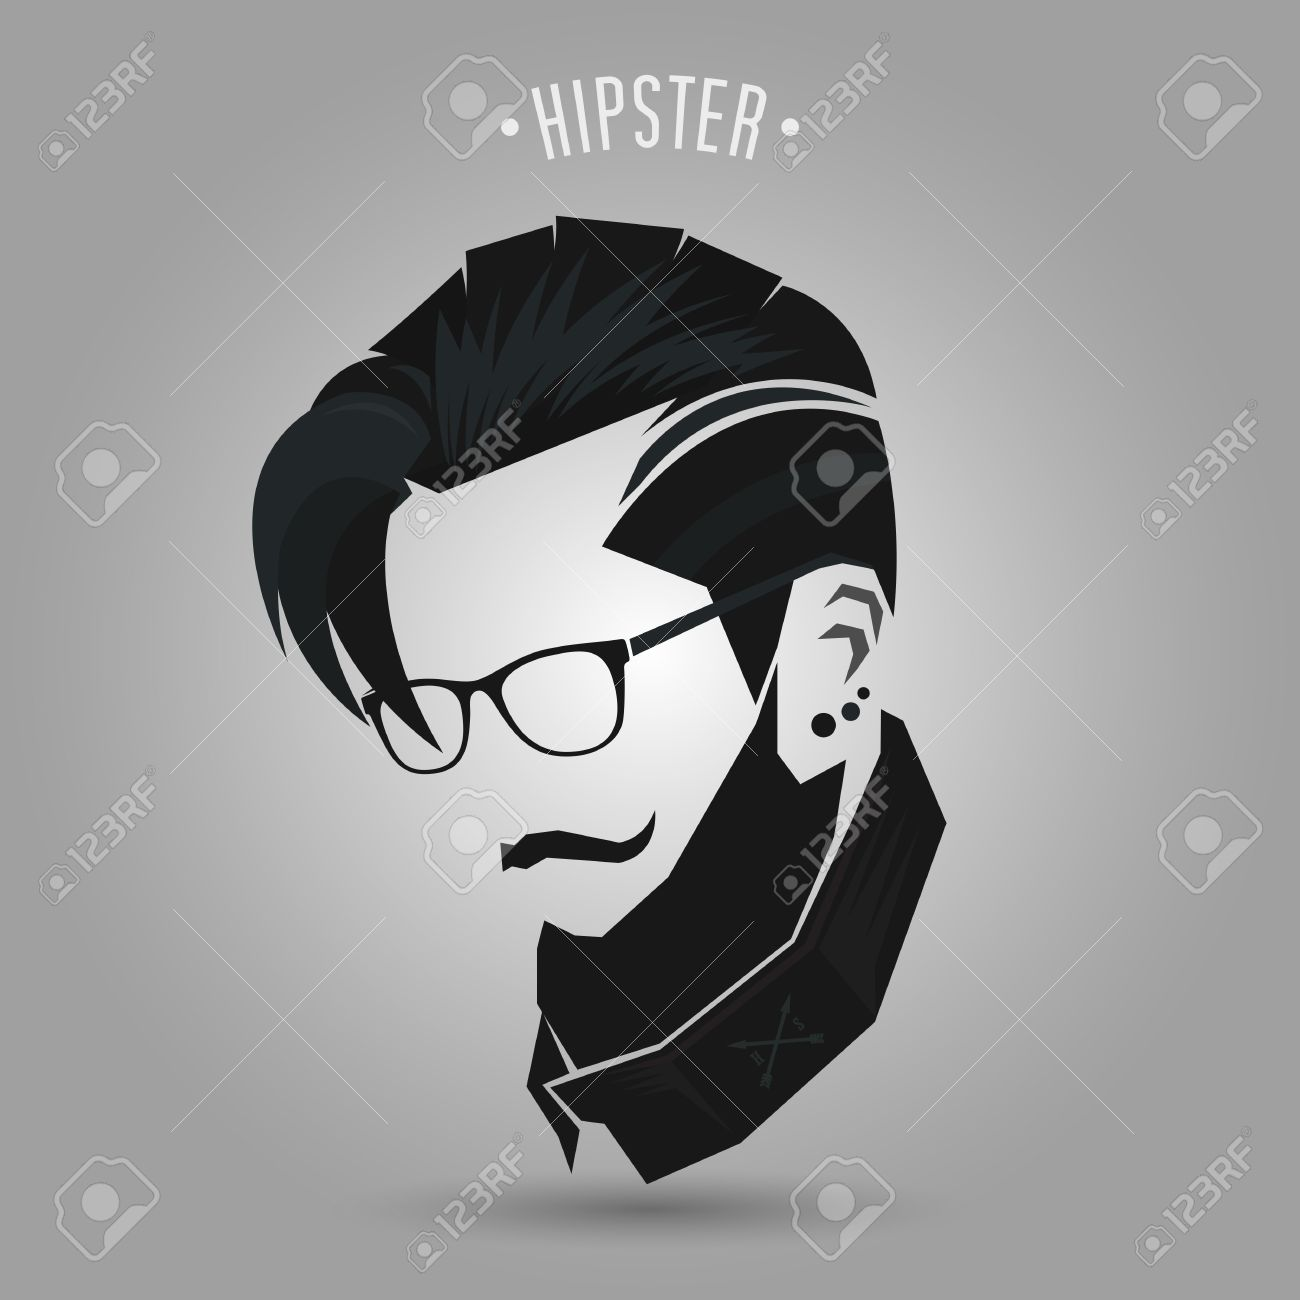 Hipster Men Vintage Hairstyle On Gray Background Royalty Free